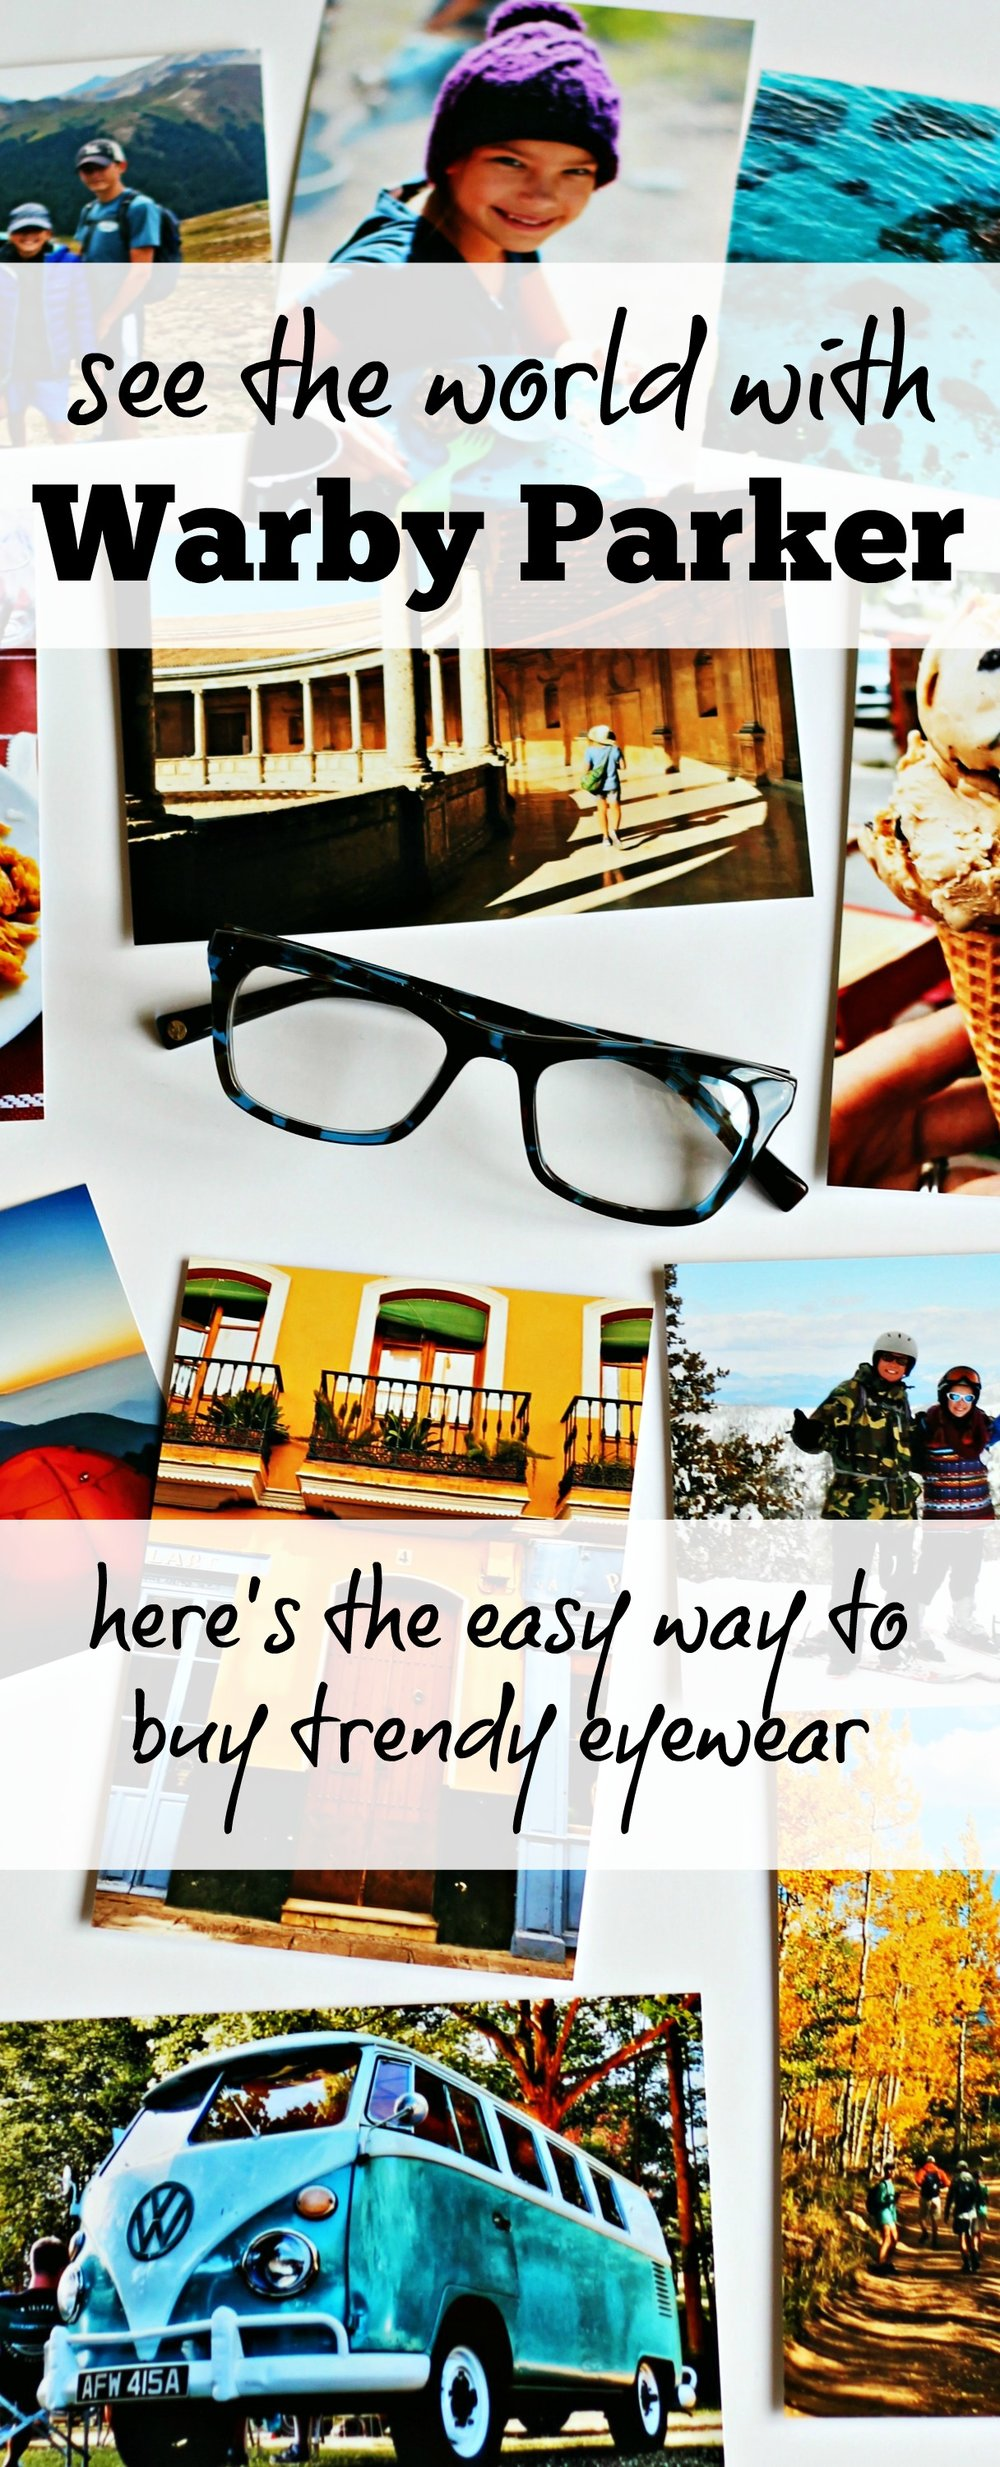 free-home-try-on-eyeglasses